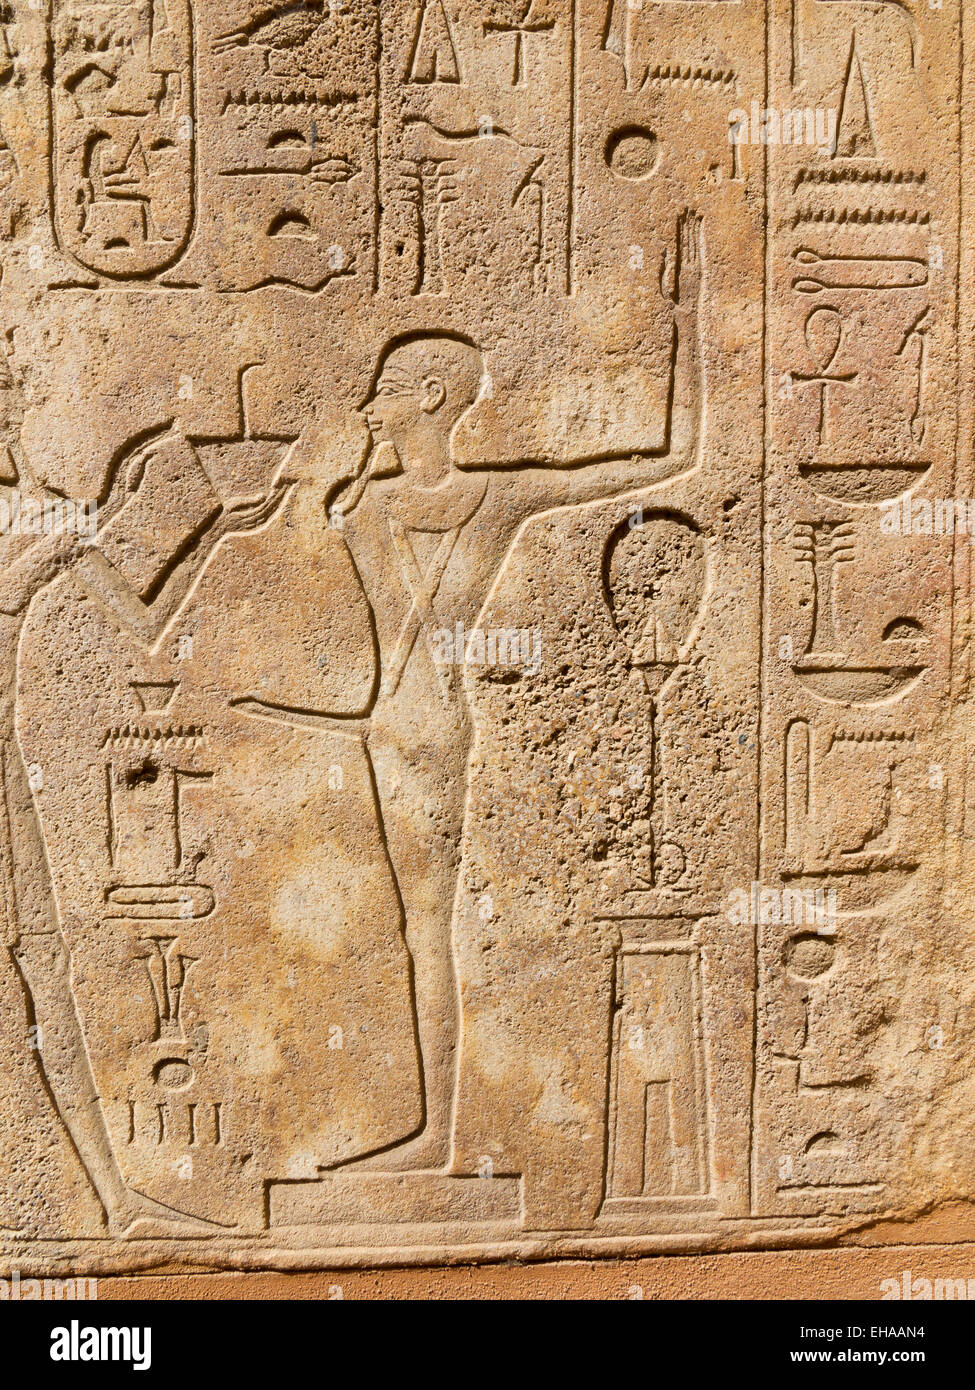 Reliefs within The Red Chapel of Queen Hatshepsut in the open-air museum at Karnak Luxor Egypt - Stock Image